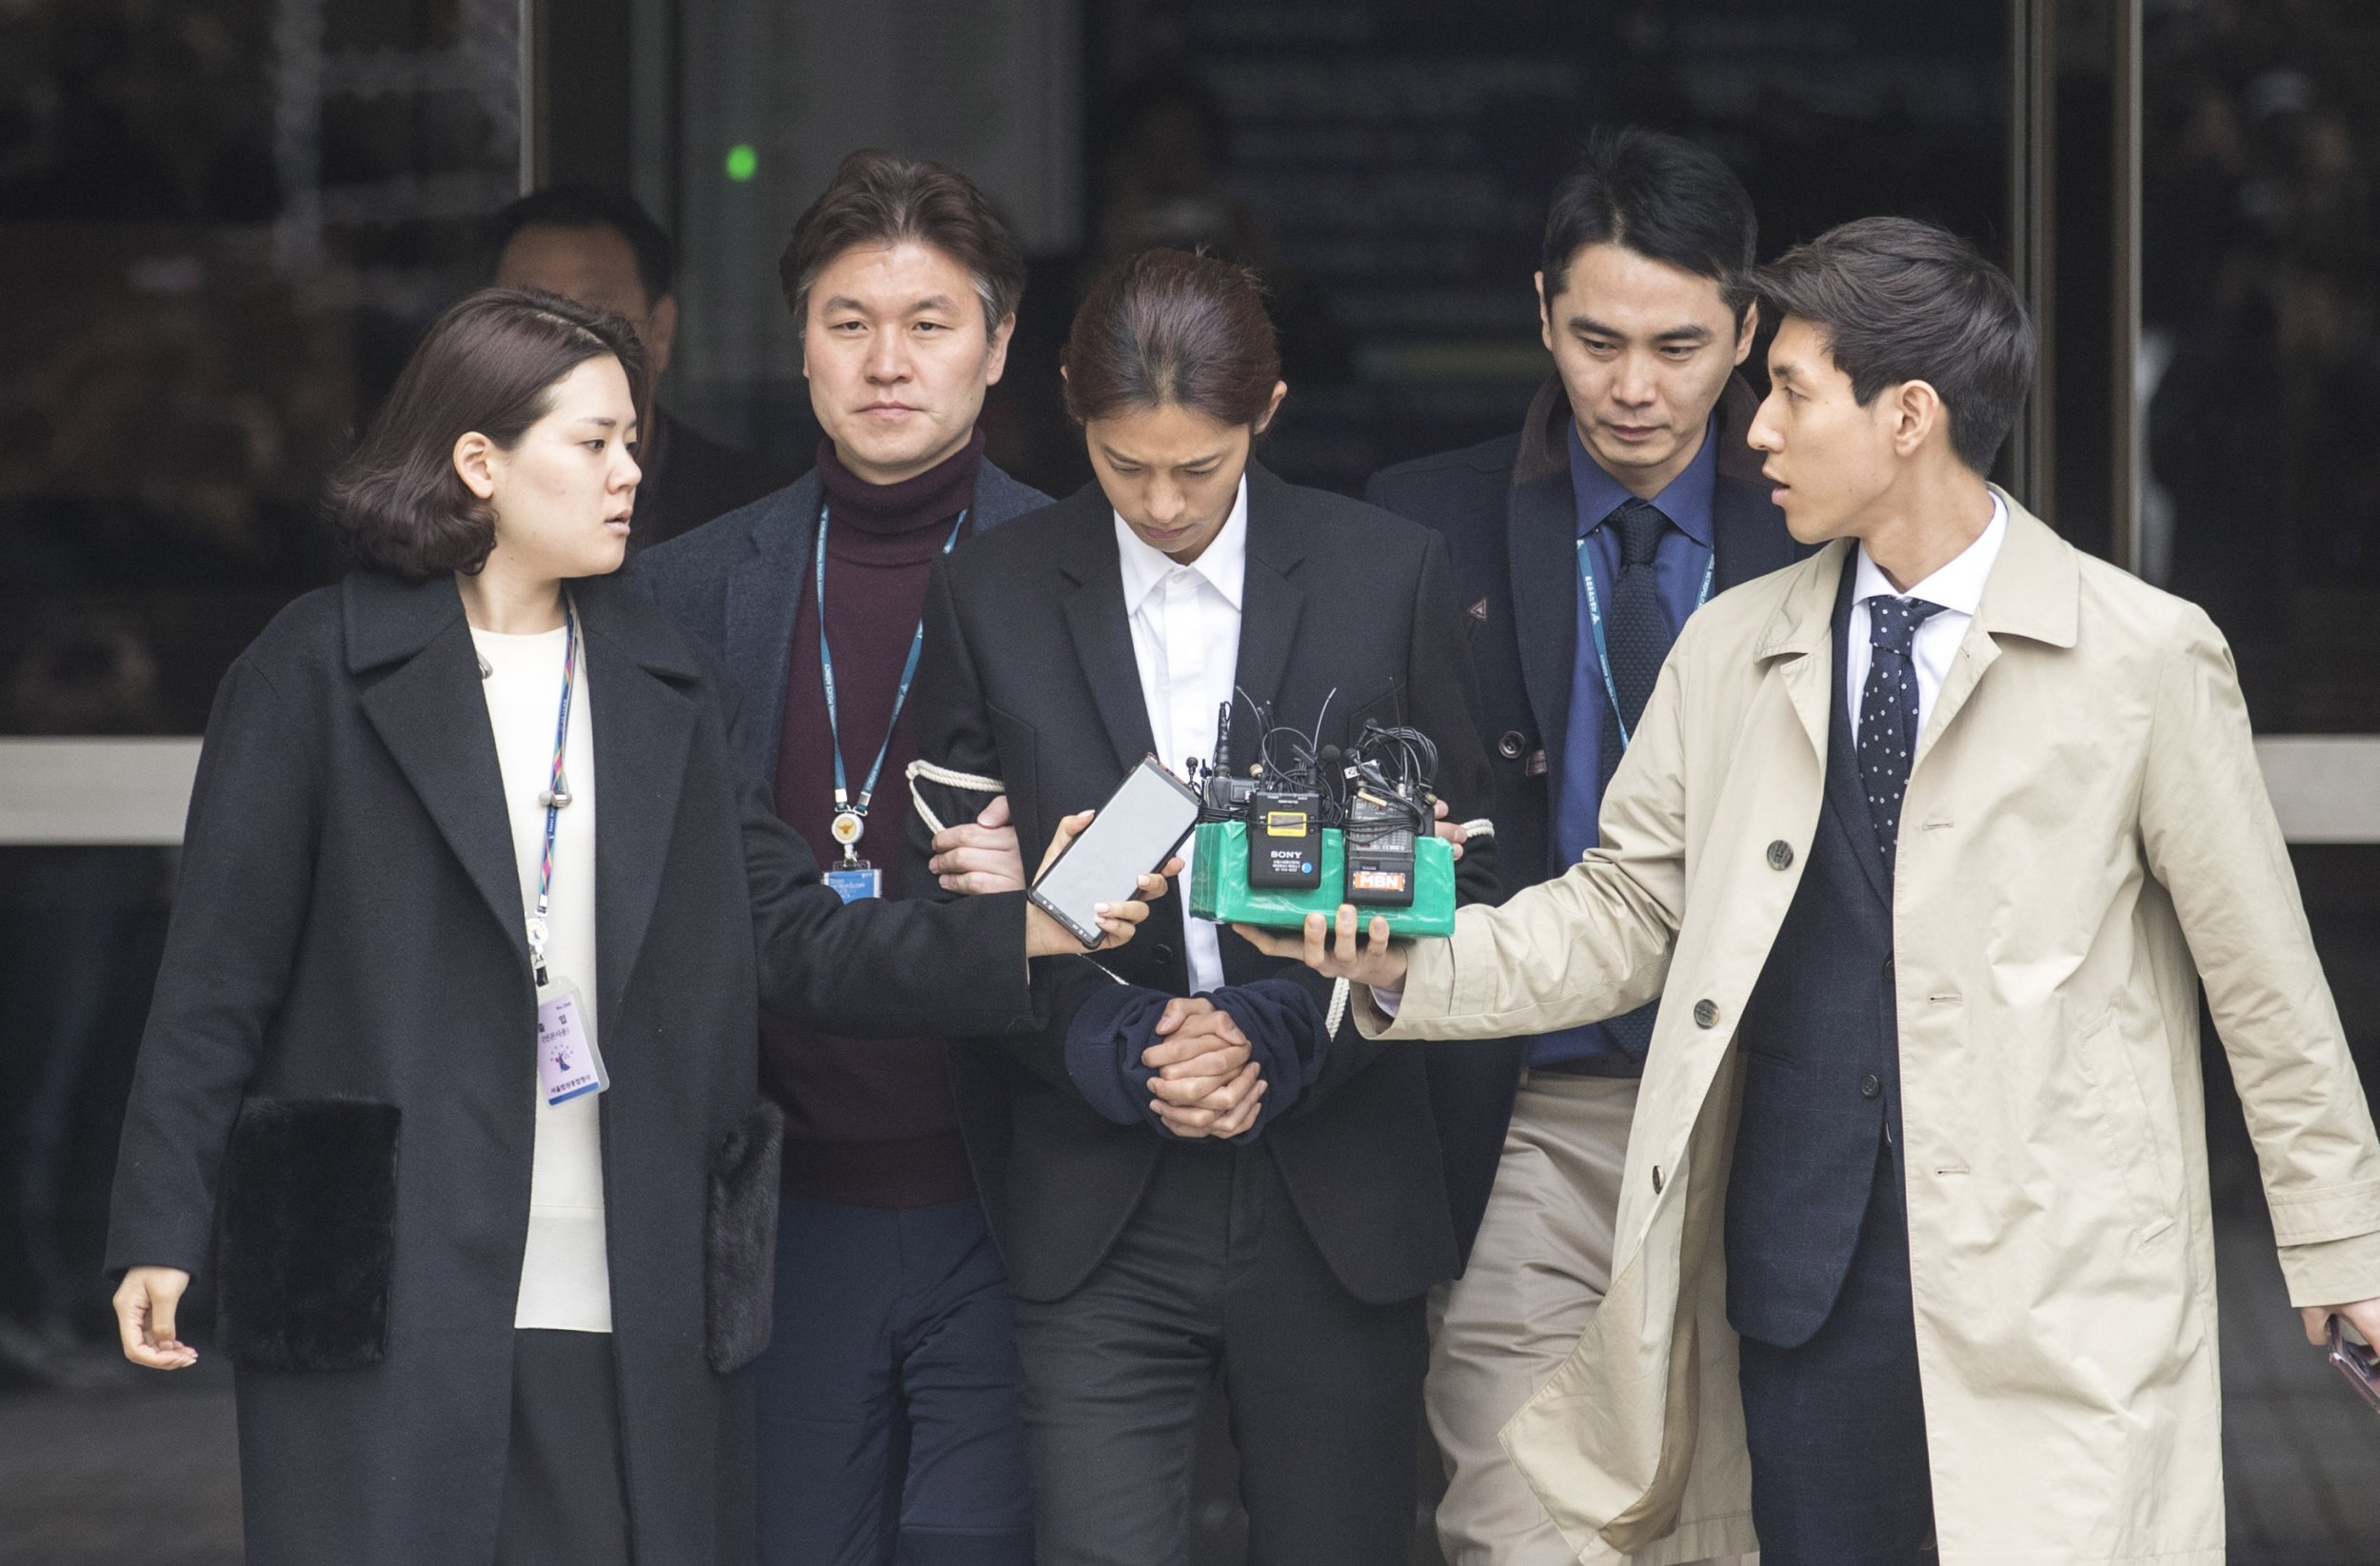 epaselect epa07452192 South Korean K-pop star Jung Joon-young (C), walks with policemen (2-R and 2-L) while waiting of the court's decision at the Seoul District Court in Seoul, South Korea, 21 March 2019. The popstar was at court to attend a hearing after he admitted to secretly filming himself engaging in sexual activities with ten or more women and sharing the footage. EPA/KIM CHUL-SOO